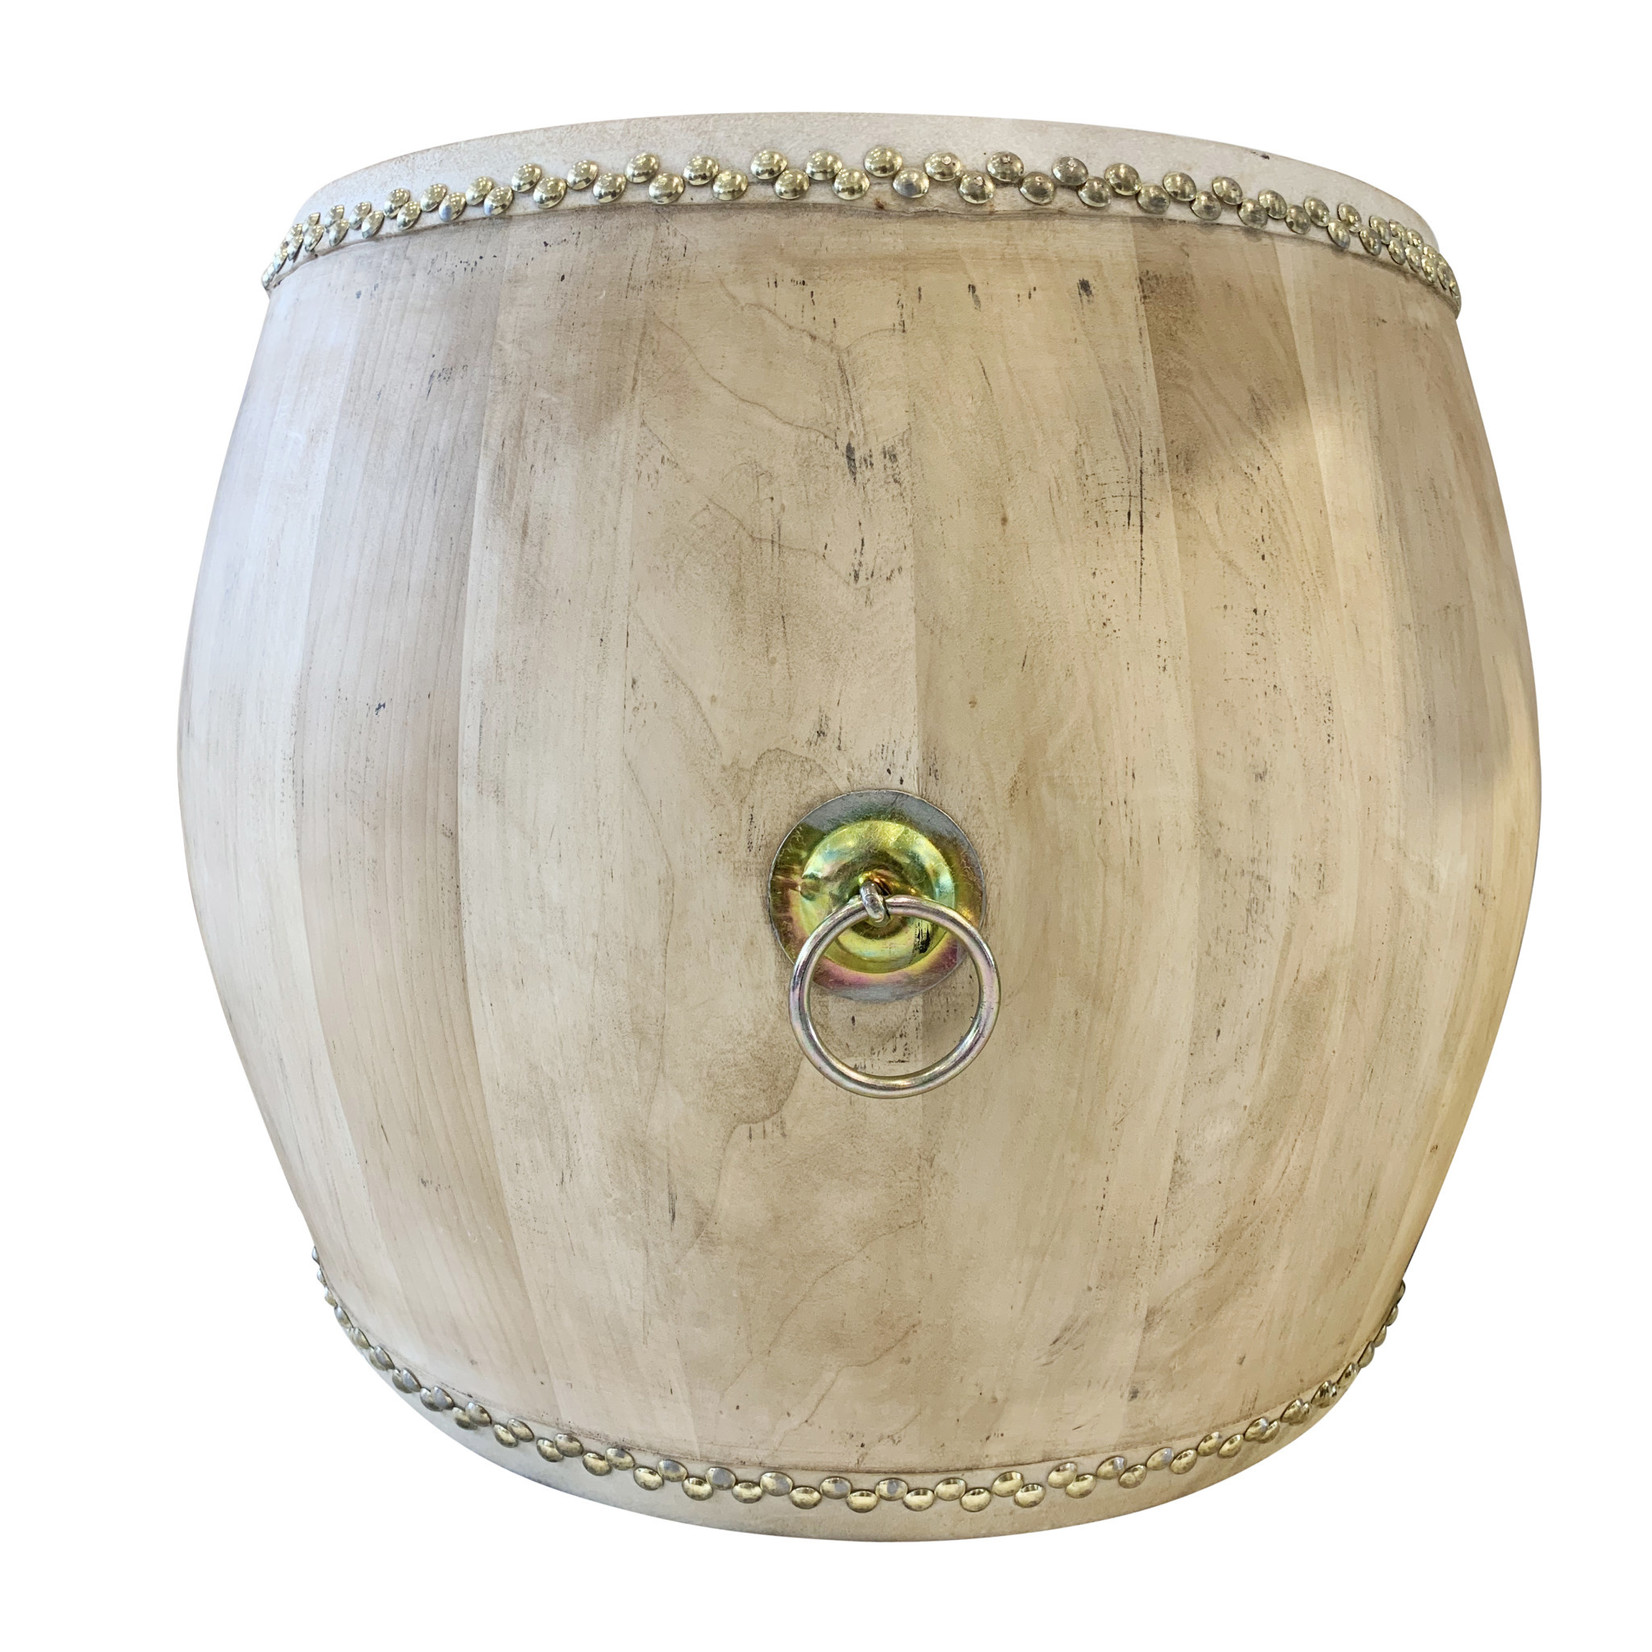 Wyld Blue Home Drums